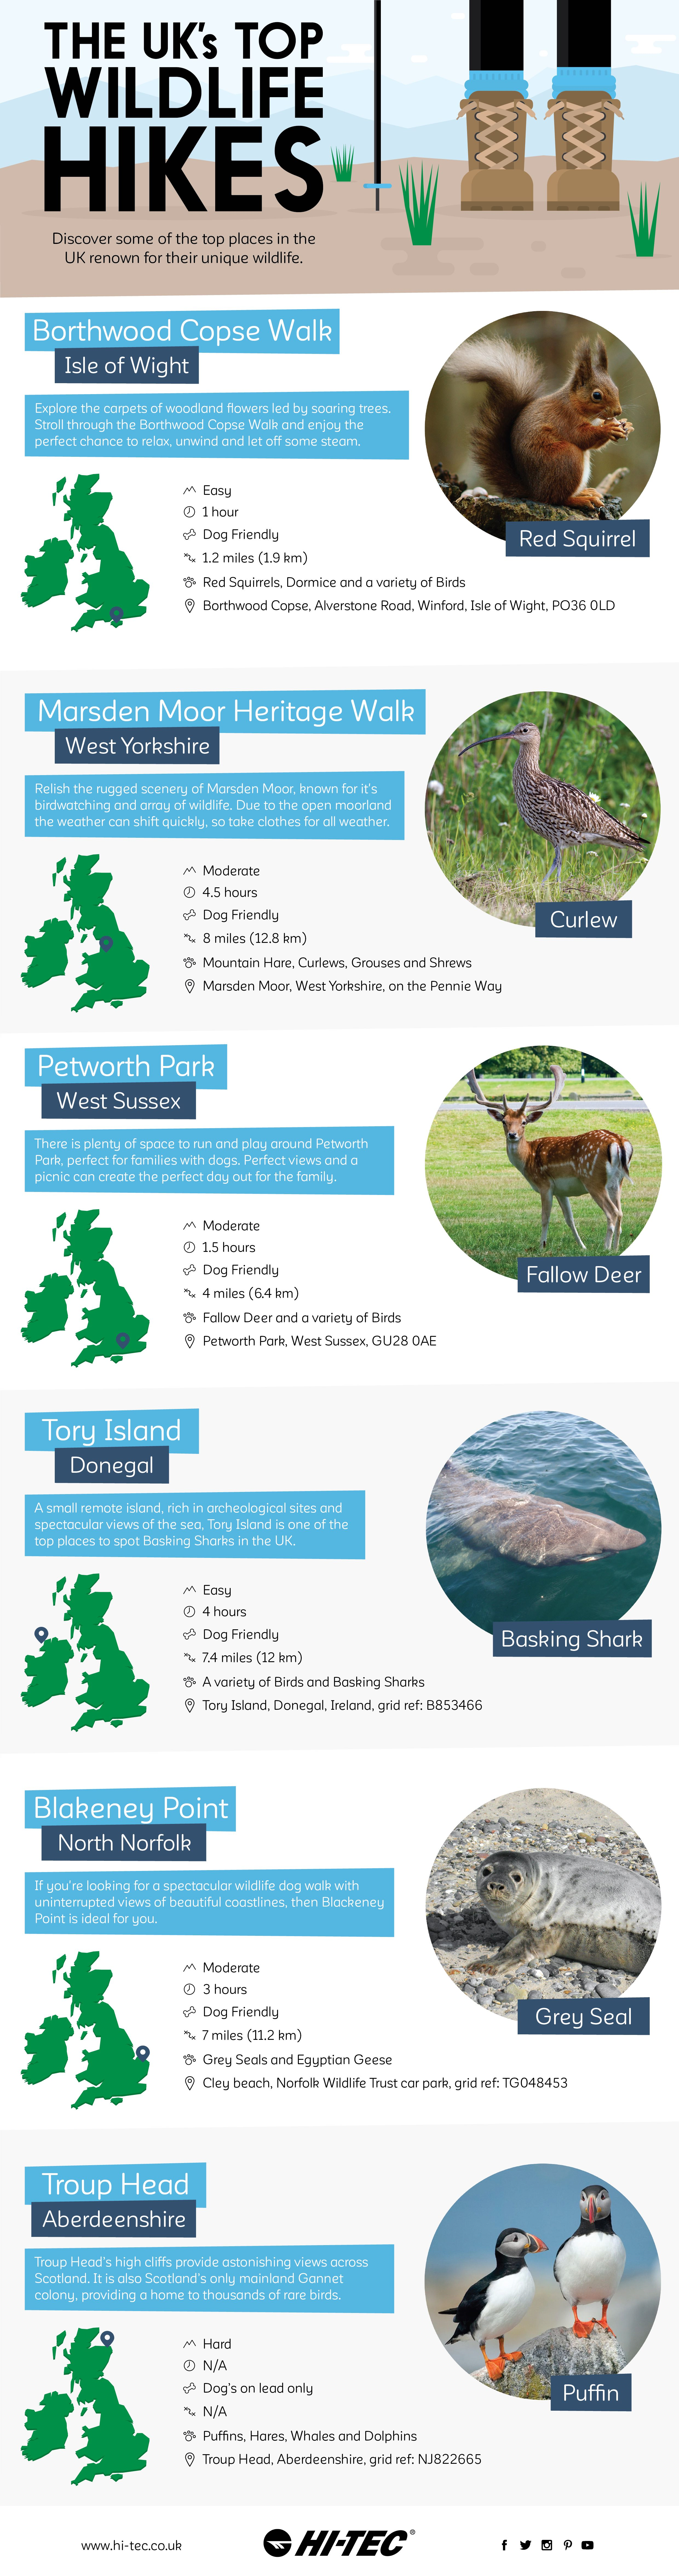 Plenty of wildlife to be found if you know where to look